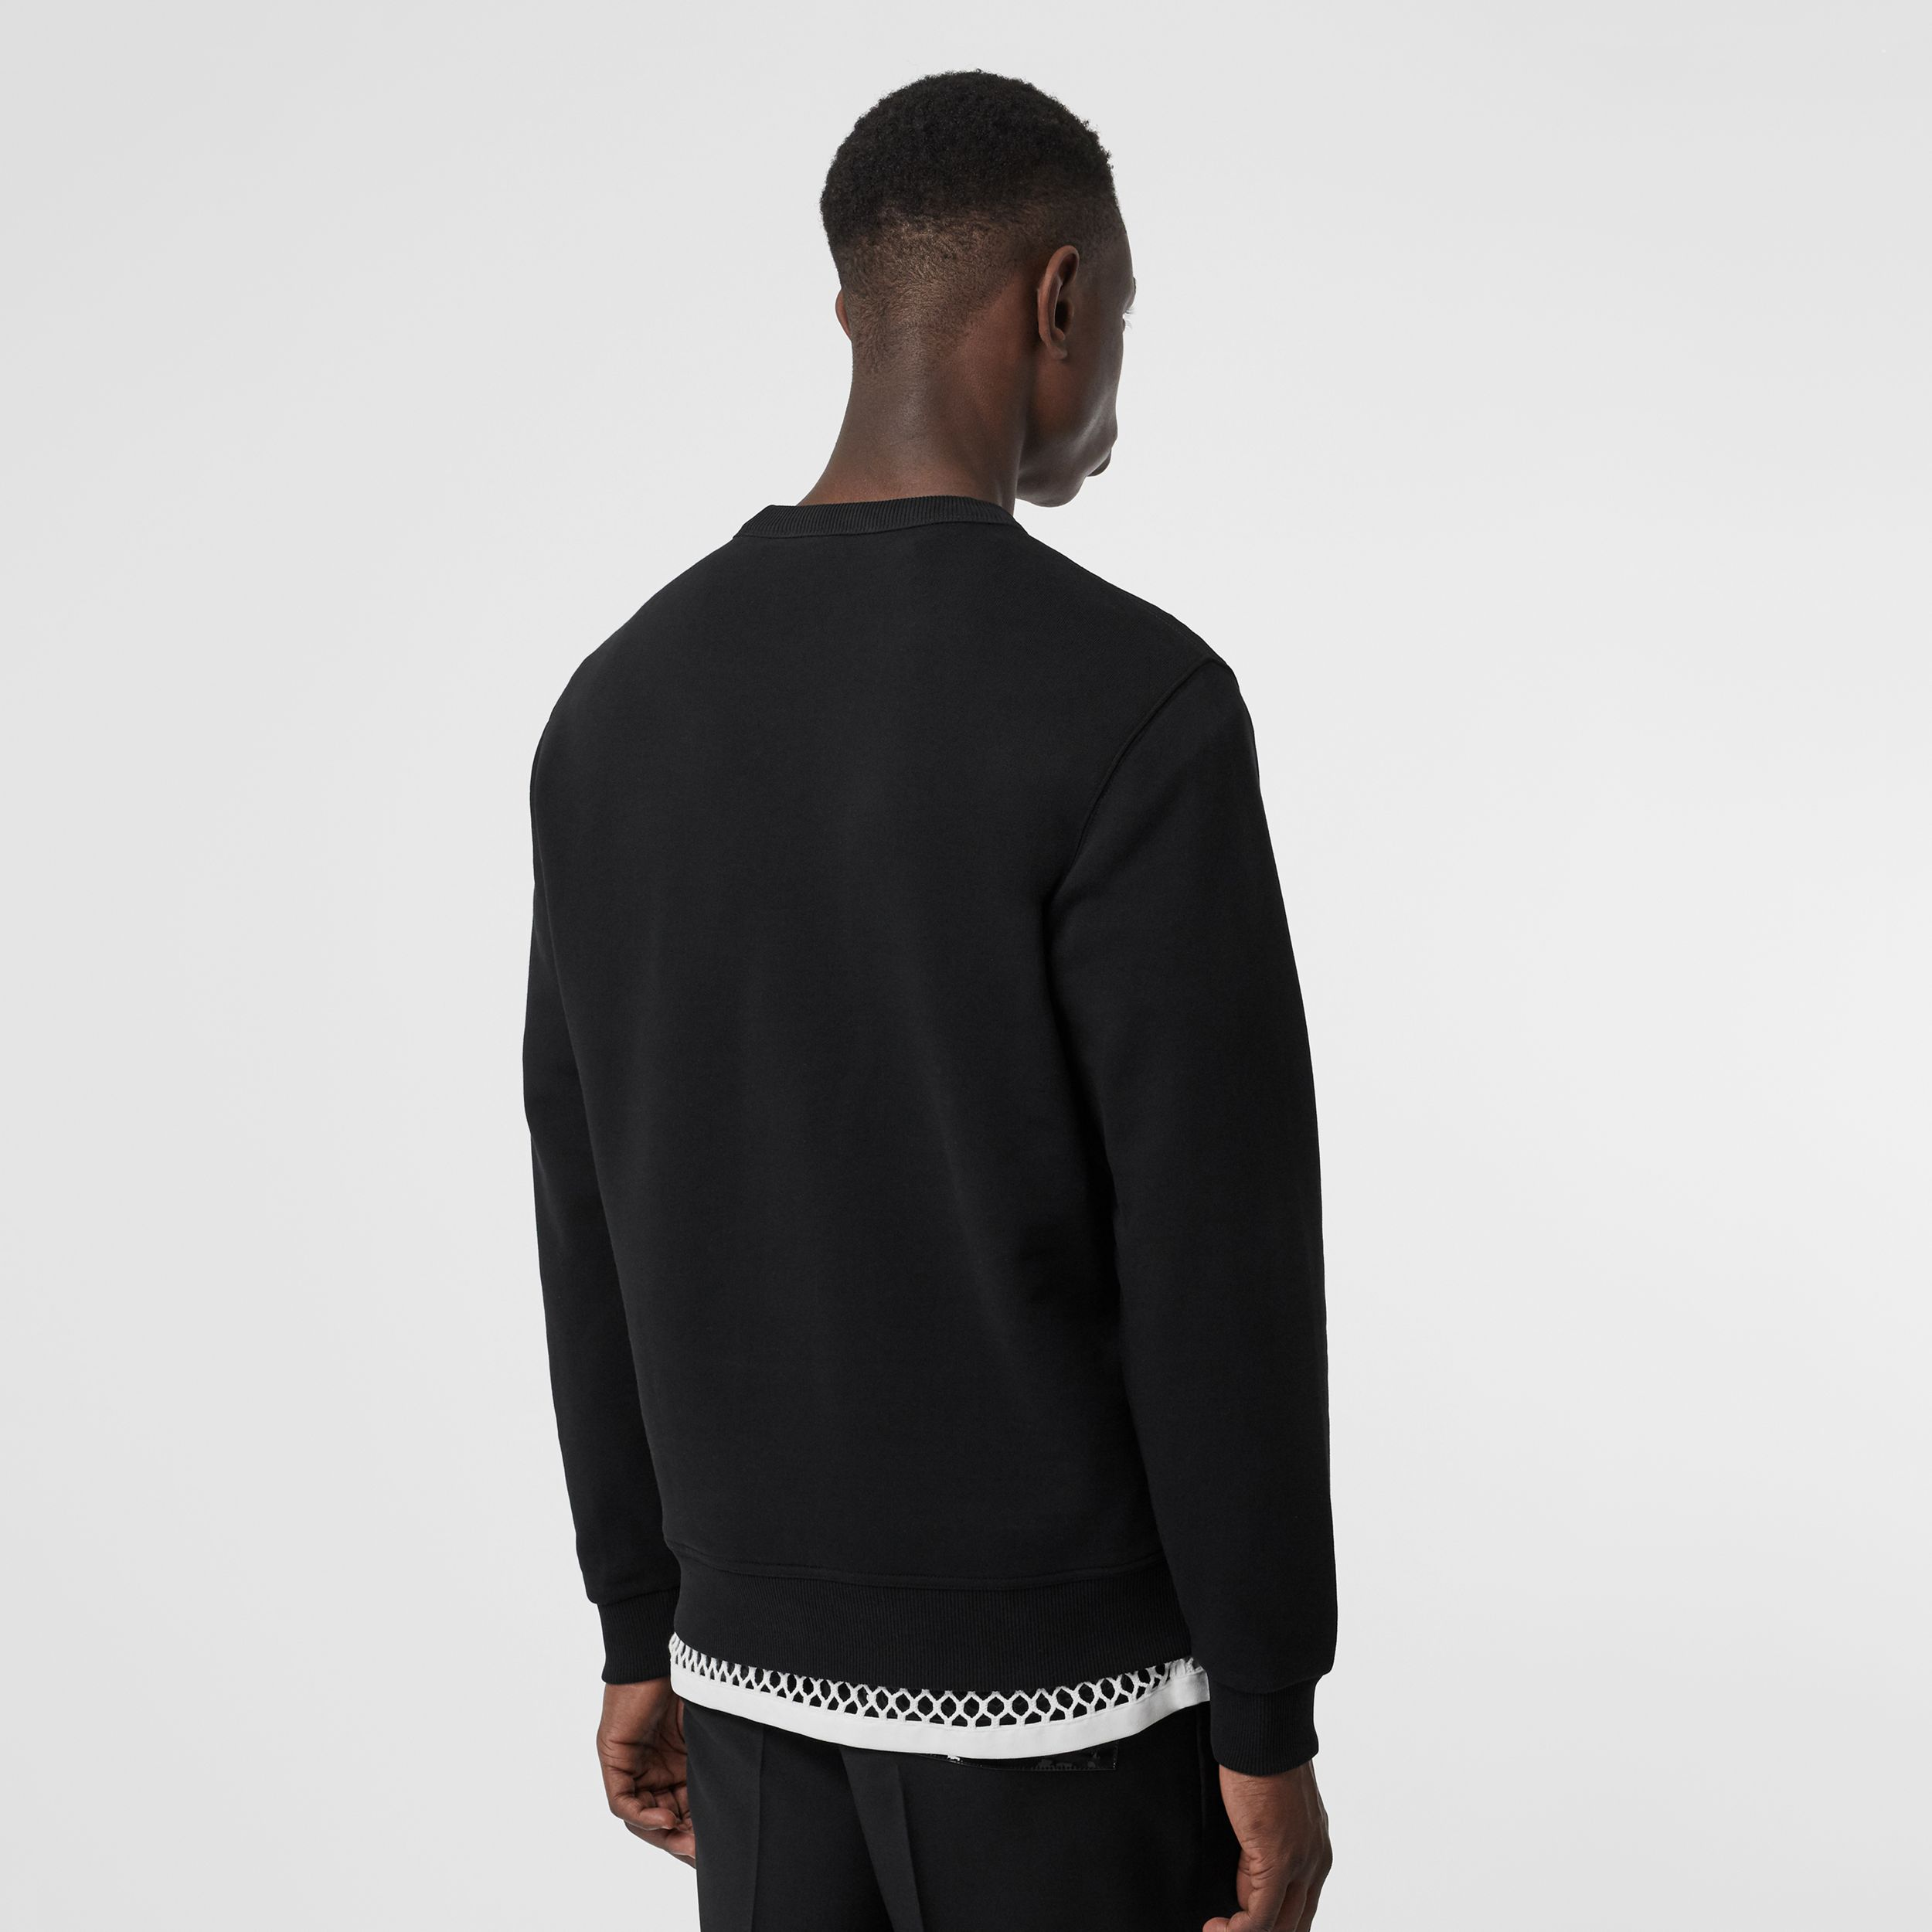 Logo Print Cotton Sweatshirt in Black - Men | Burberry - 3